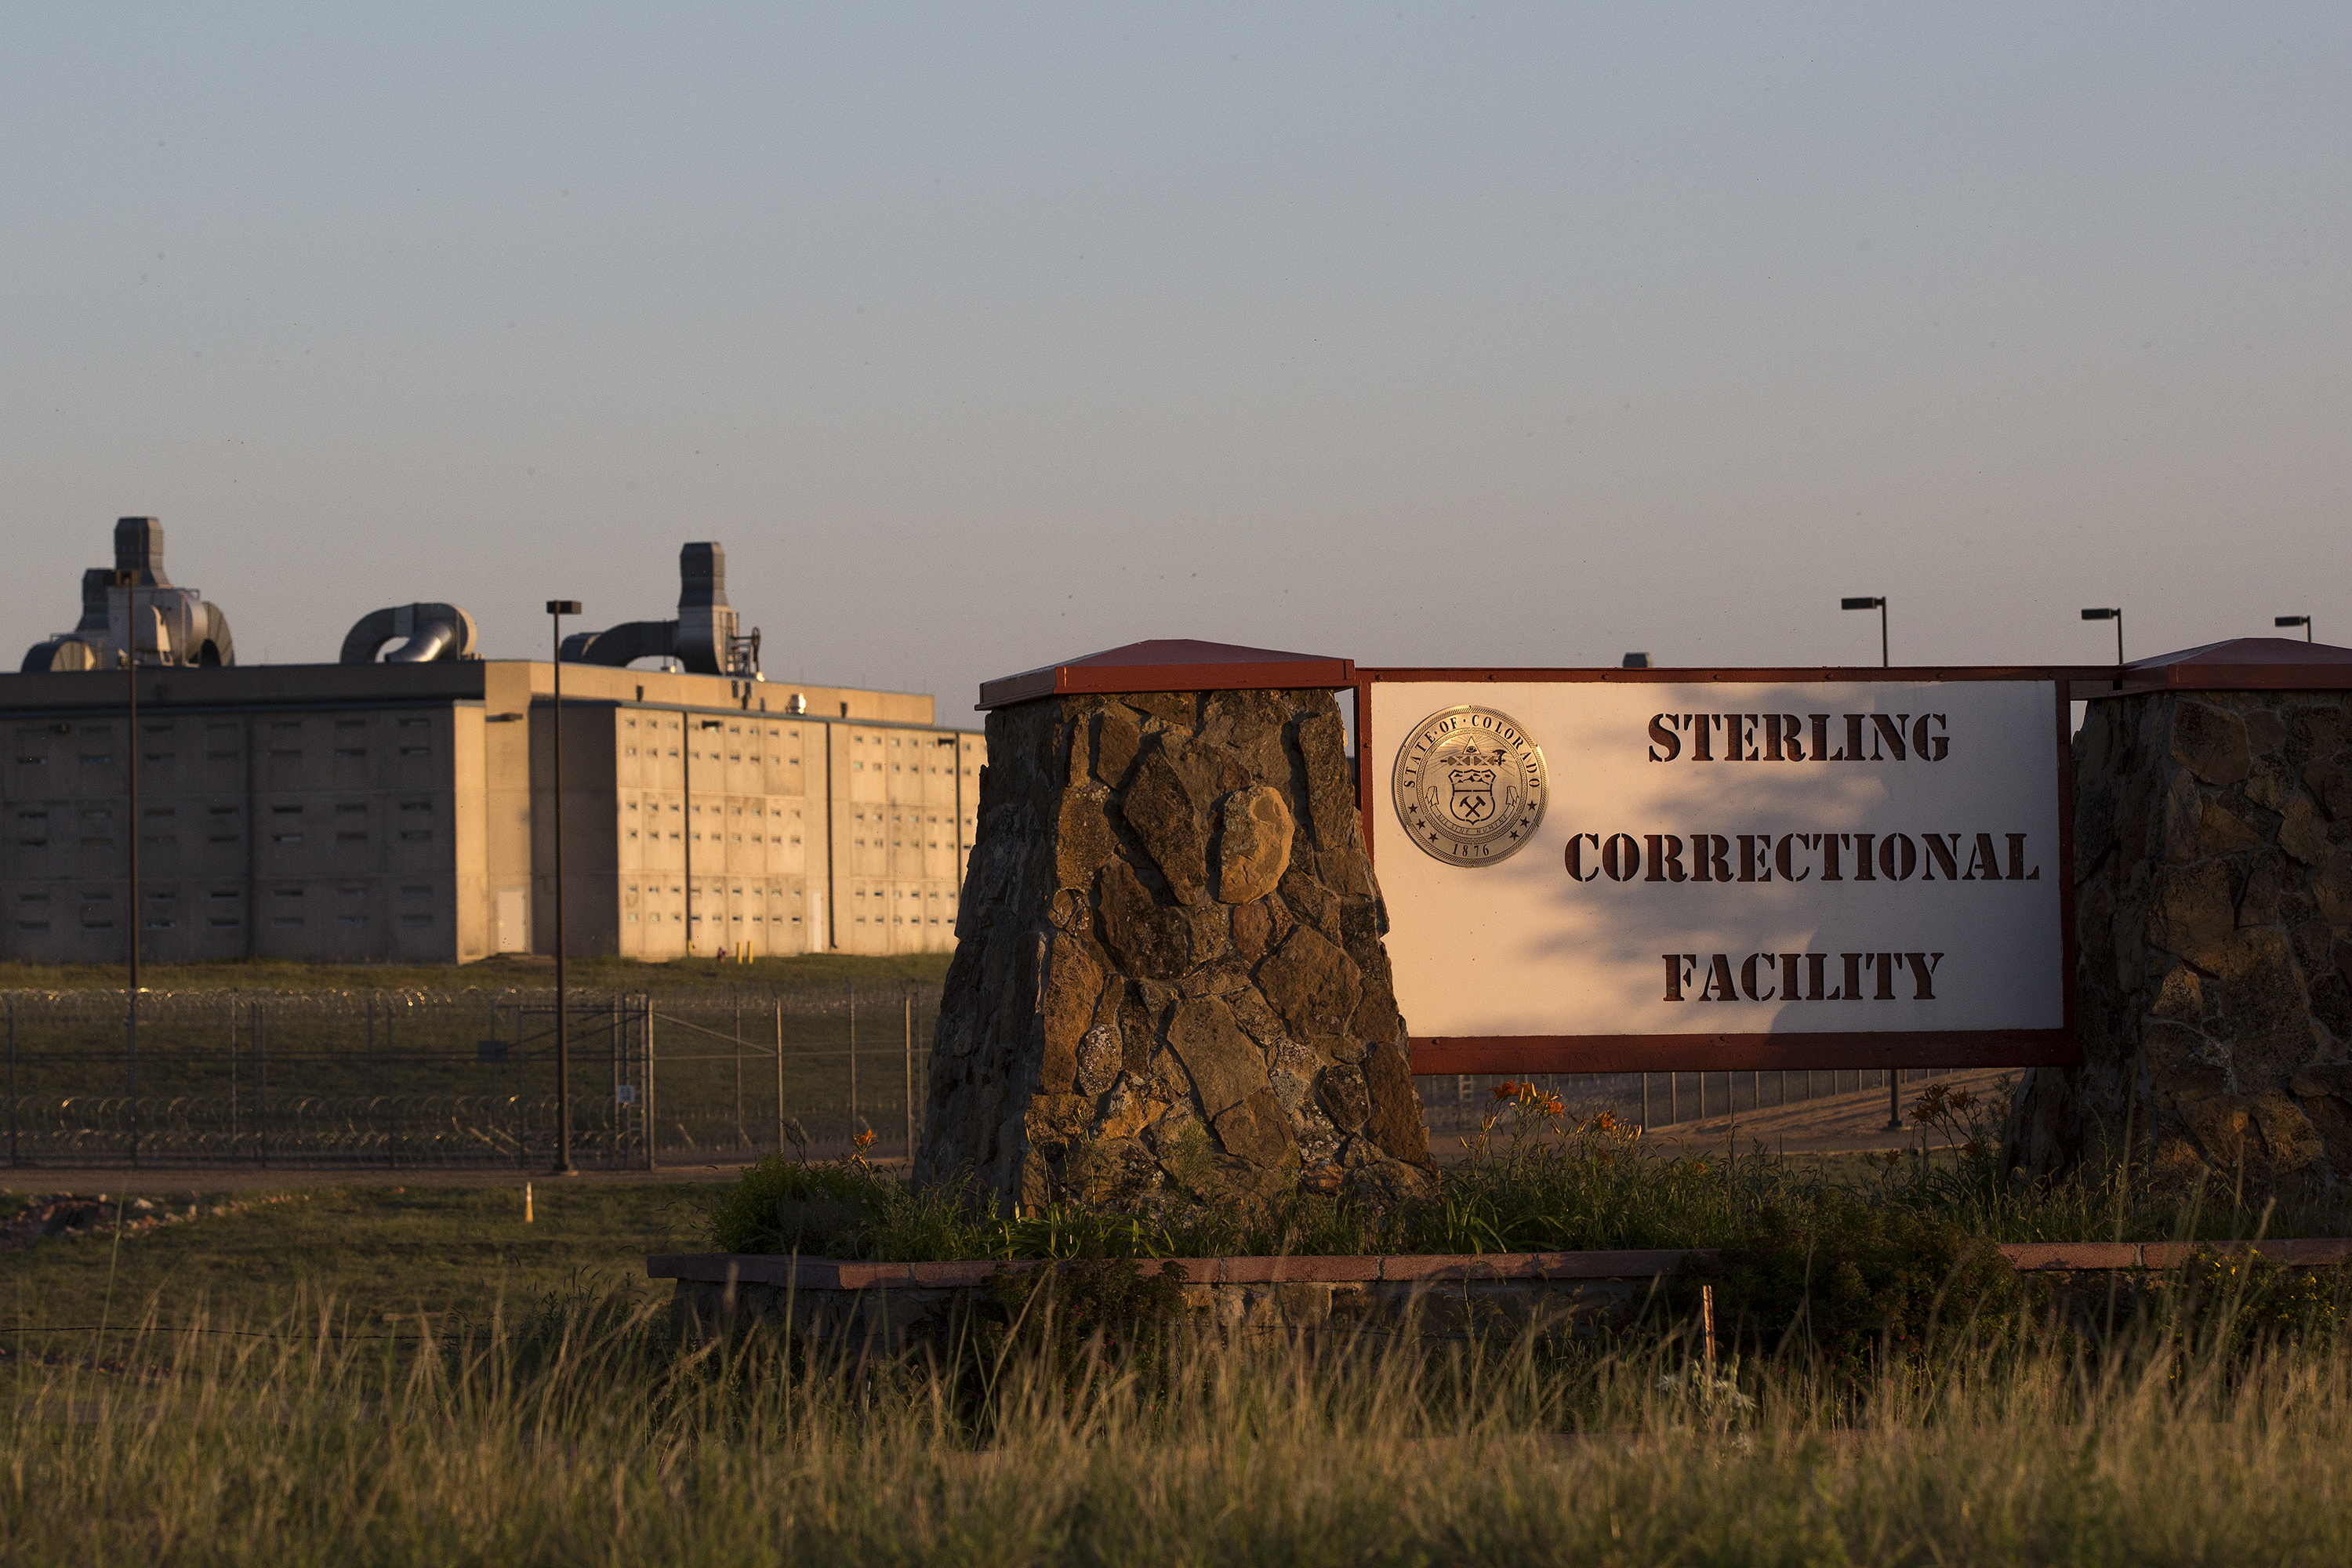 The Sterling Correctional Facility on the outskirts of Sterling in early August 2018. It's the largest prison in the Colorado Department of Corrections system.